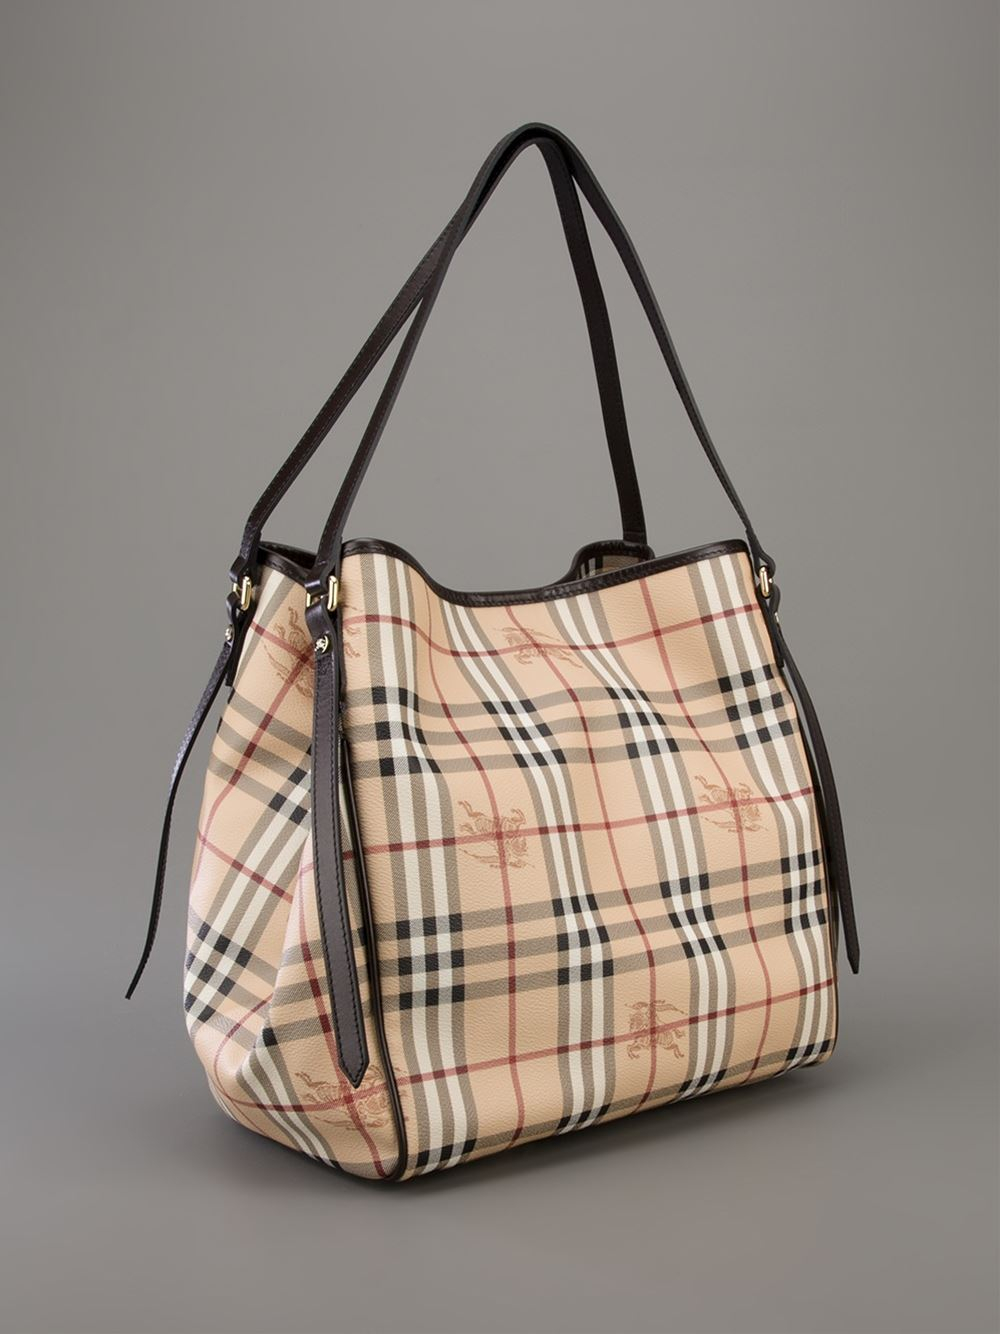 16826a53f067 Lyst - Burberry Canterbury Tote Bag in Brown